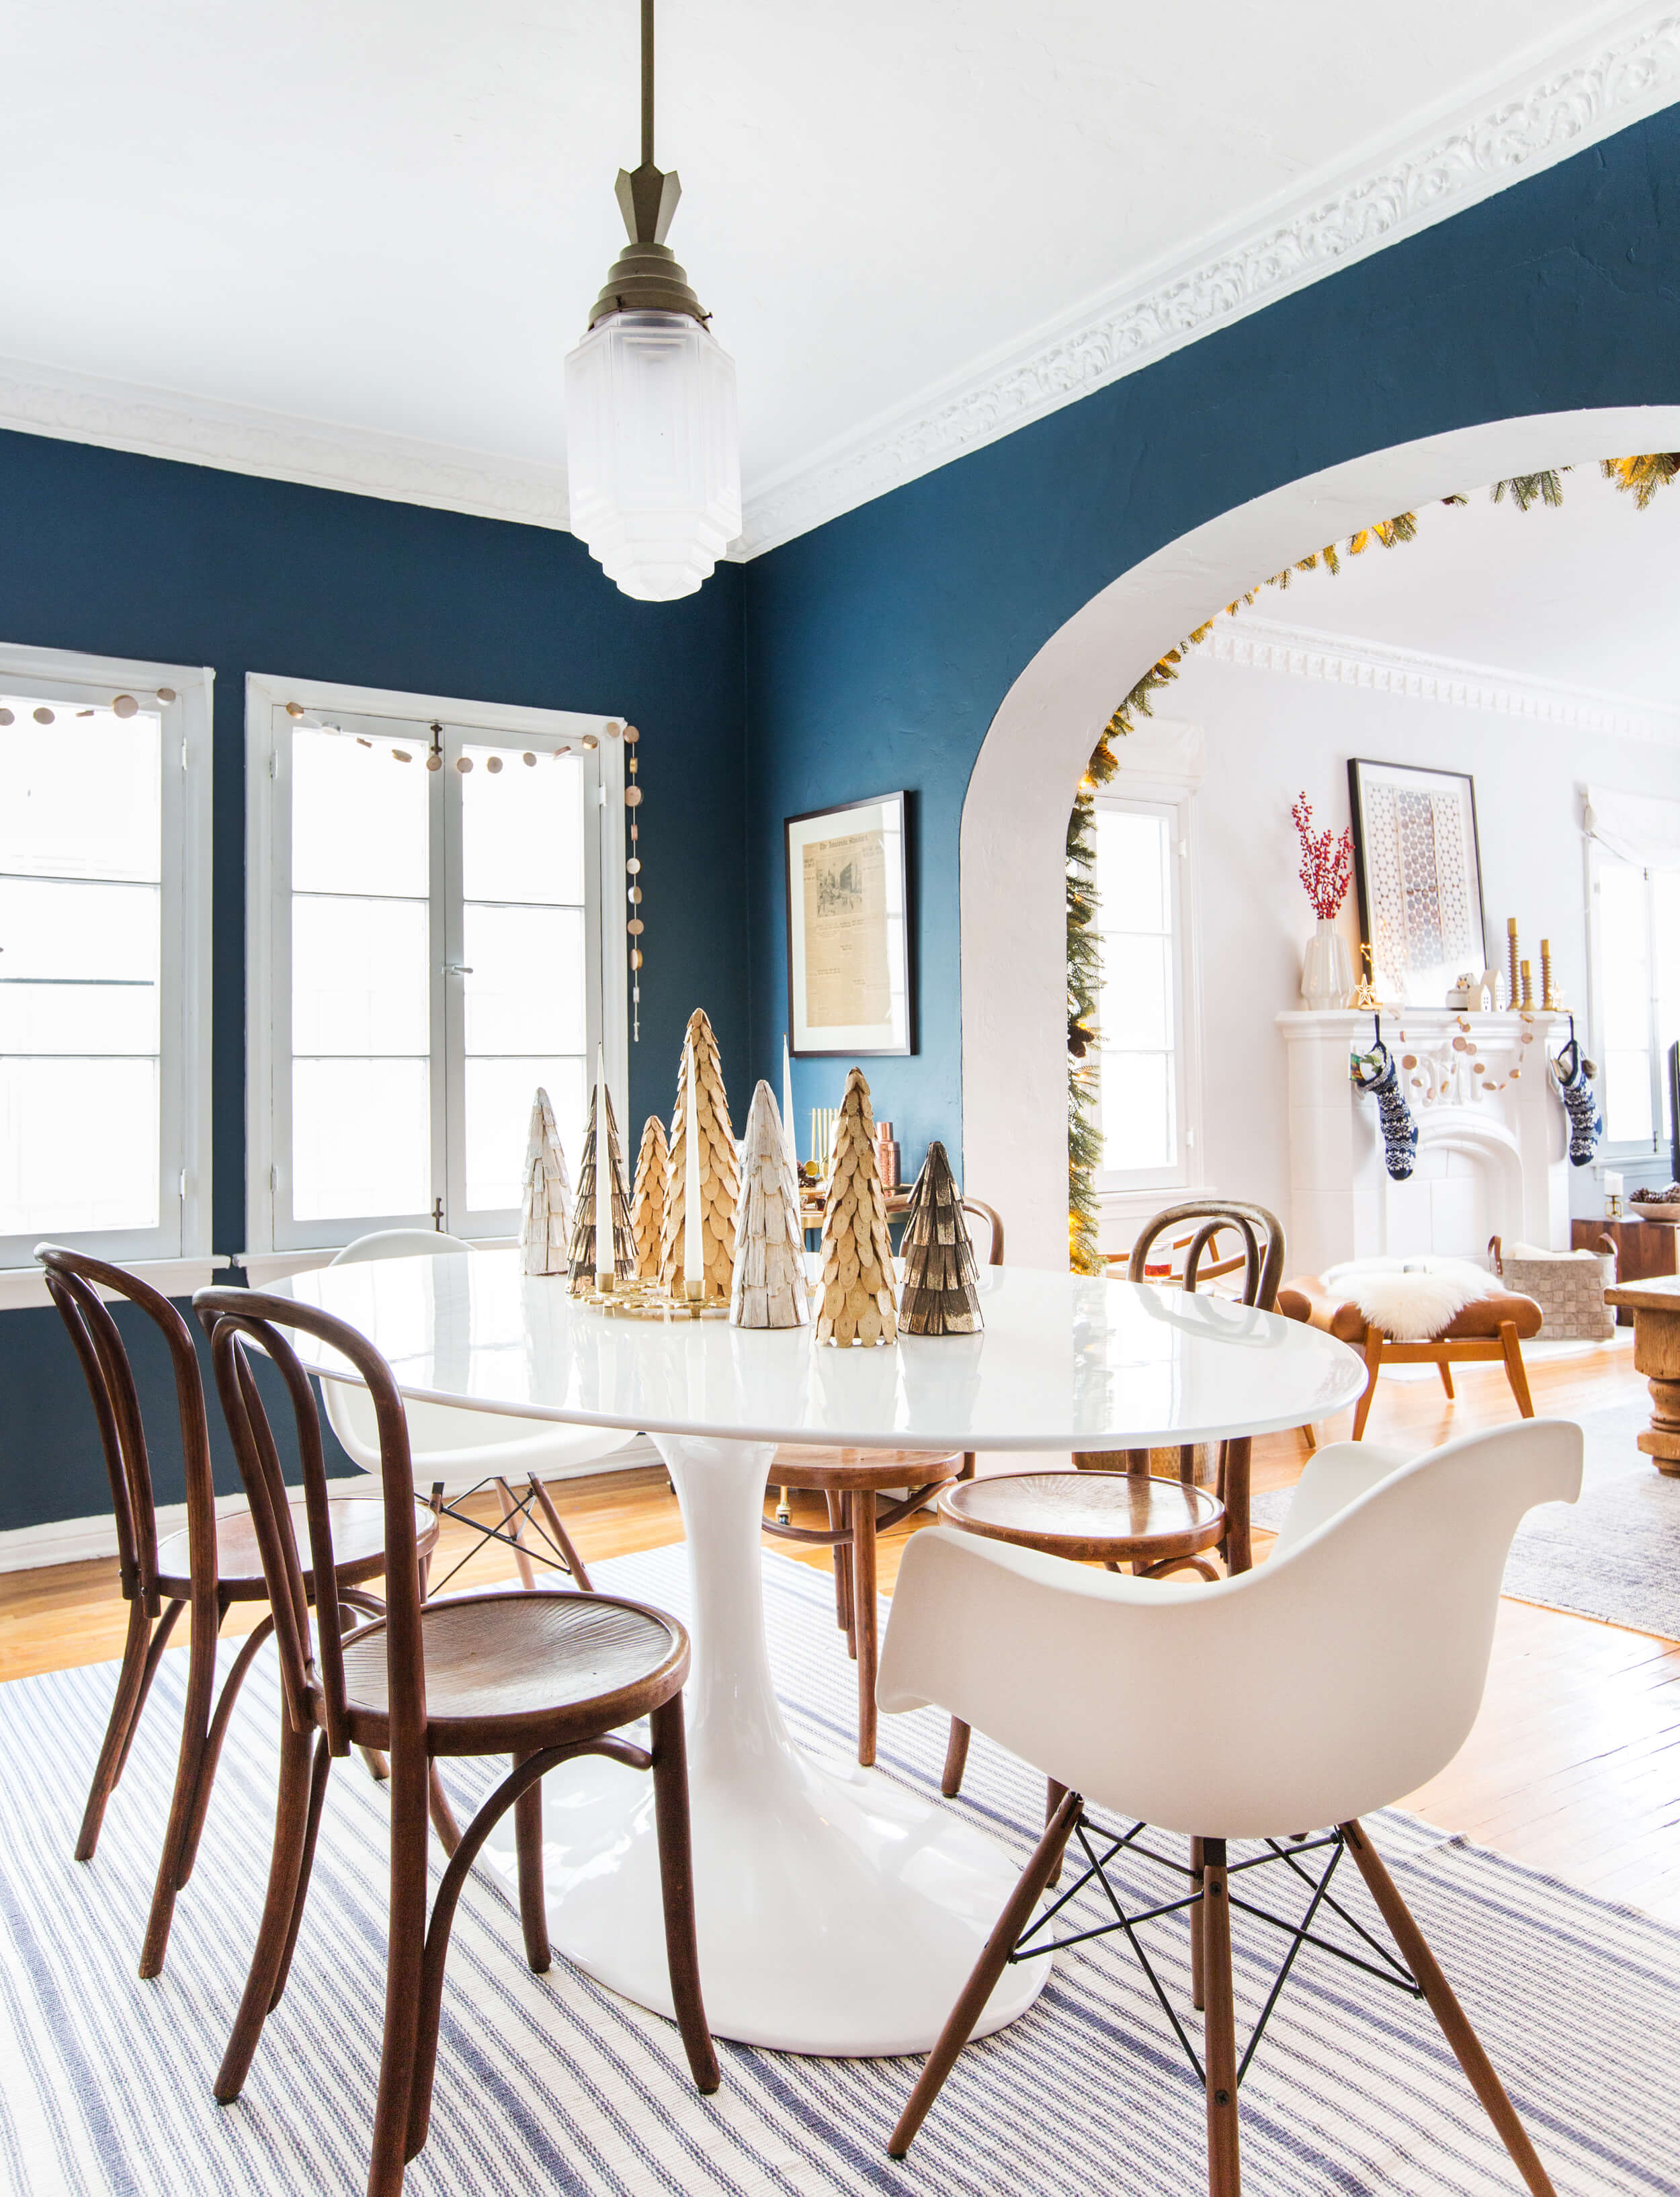 GINNY_MACDONALD_HOLIDAY_DECORATING_CHRISTMAS_WHITE_NEUTRAL_COSY_COTTAGE_21